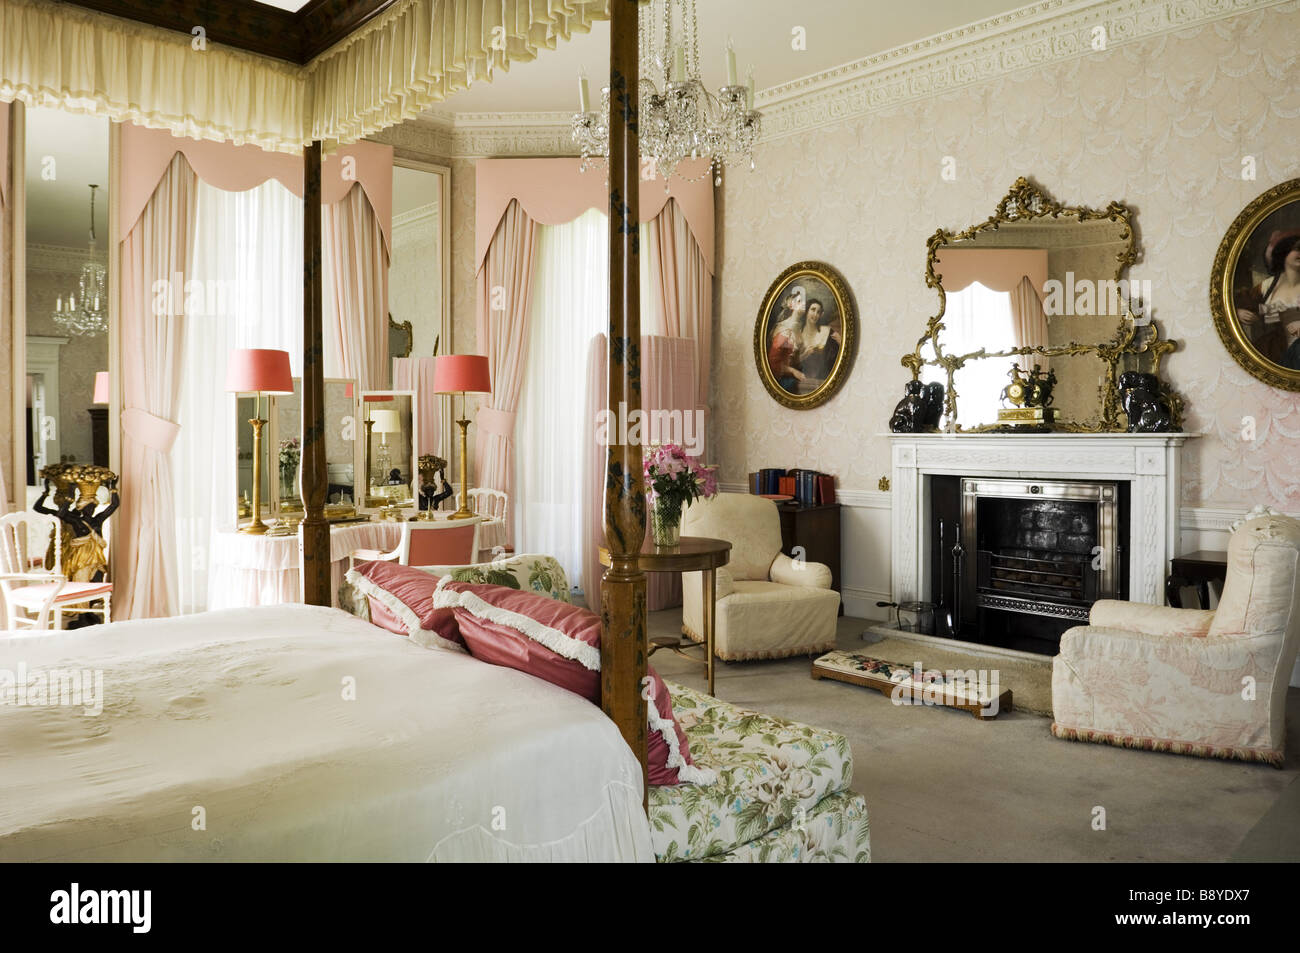 Lady Bedroom Lady Anglesey S Bedroom At Plas Newydd On The Isle Of Anglesey